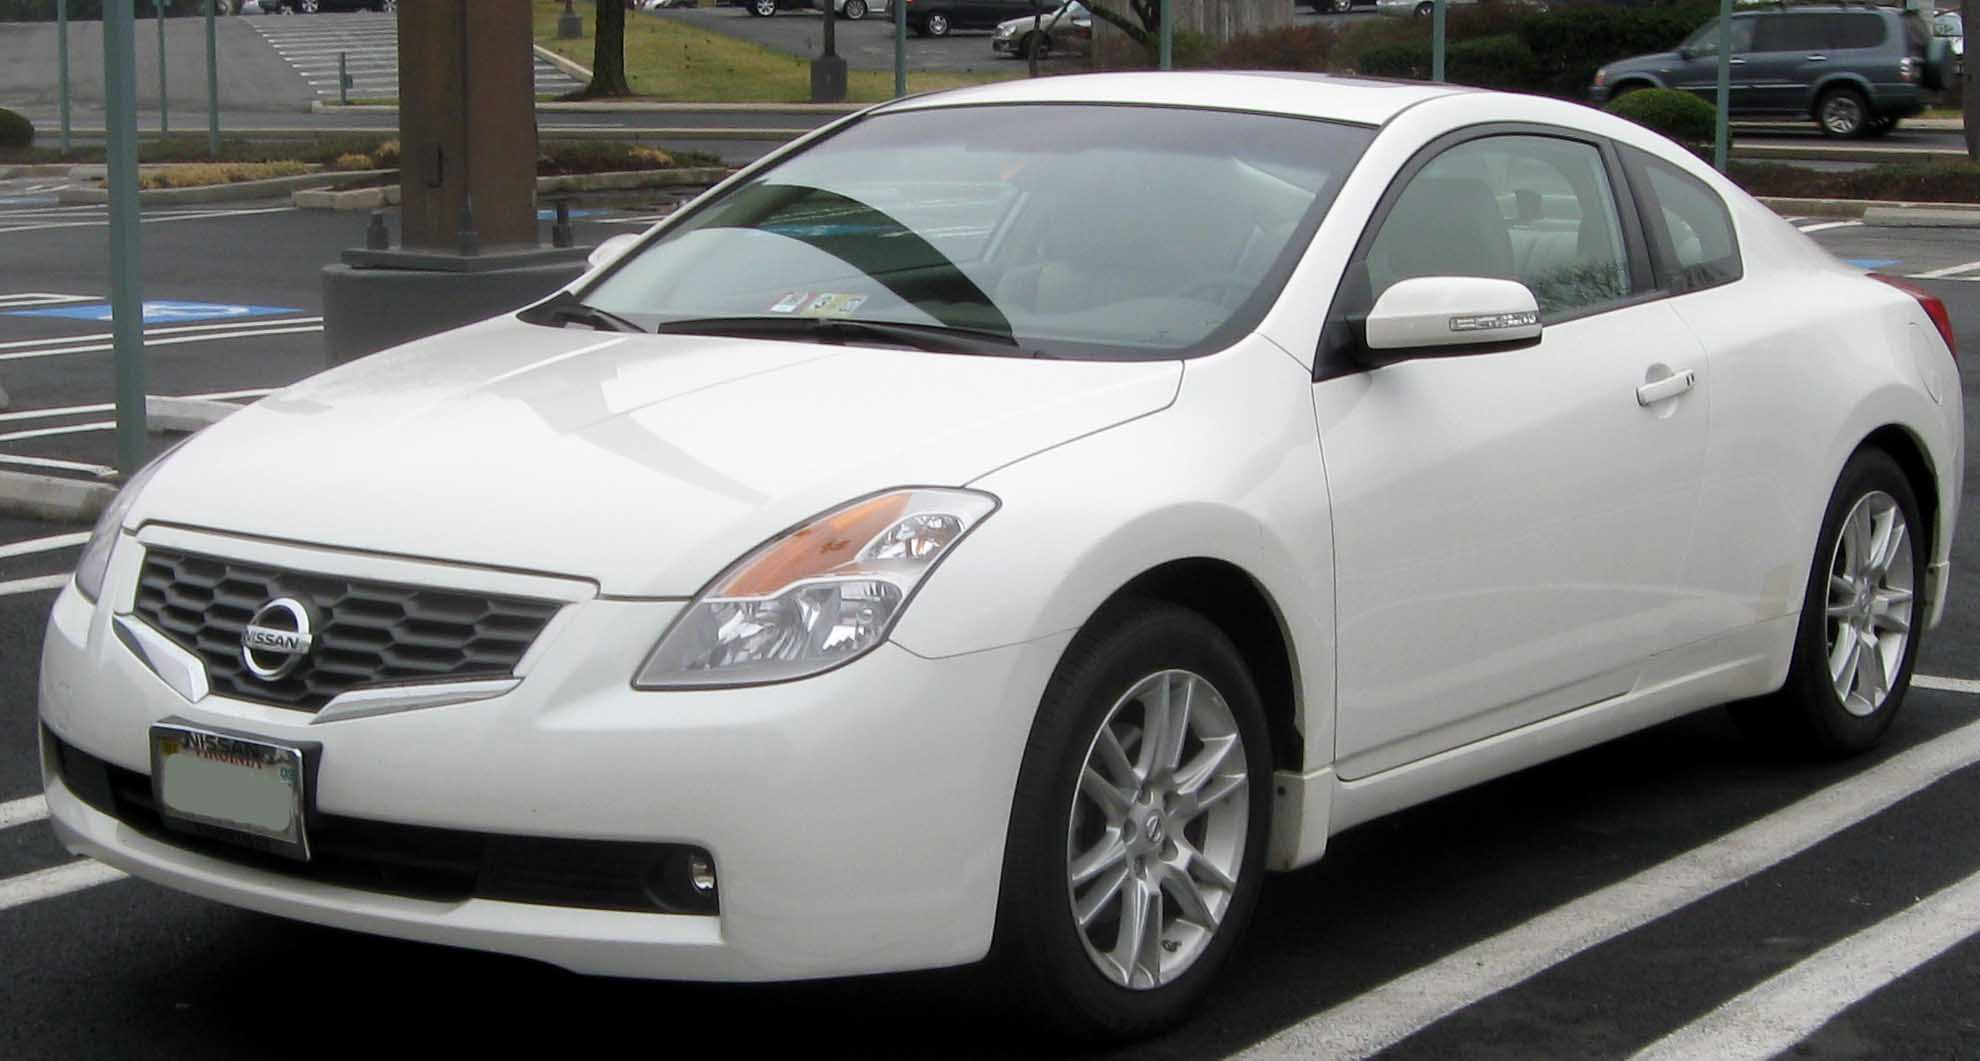 File Nissan Altima Coupe Jpg Wikimedia Commons